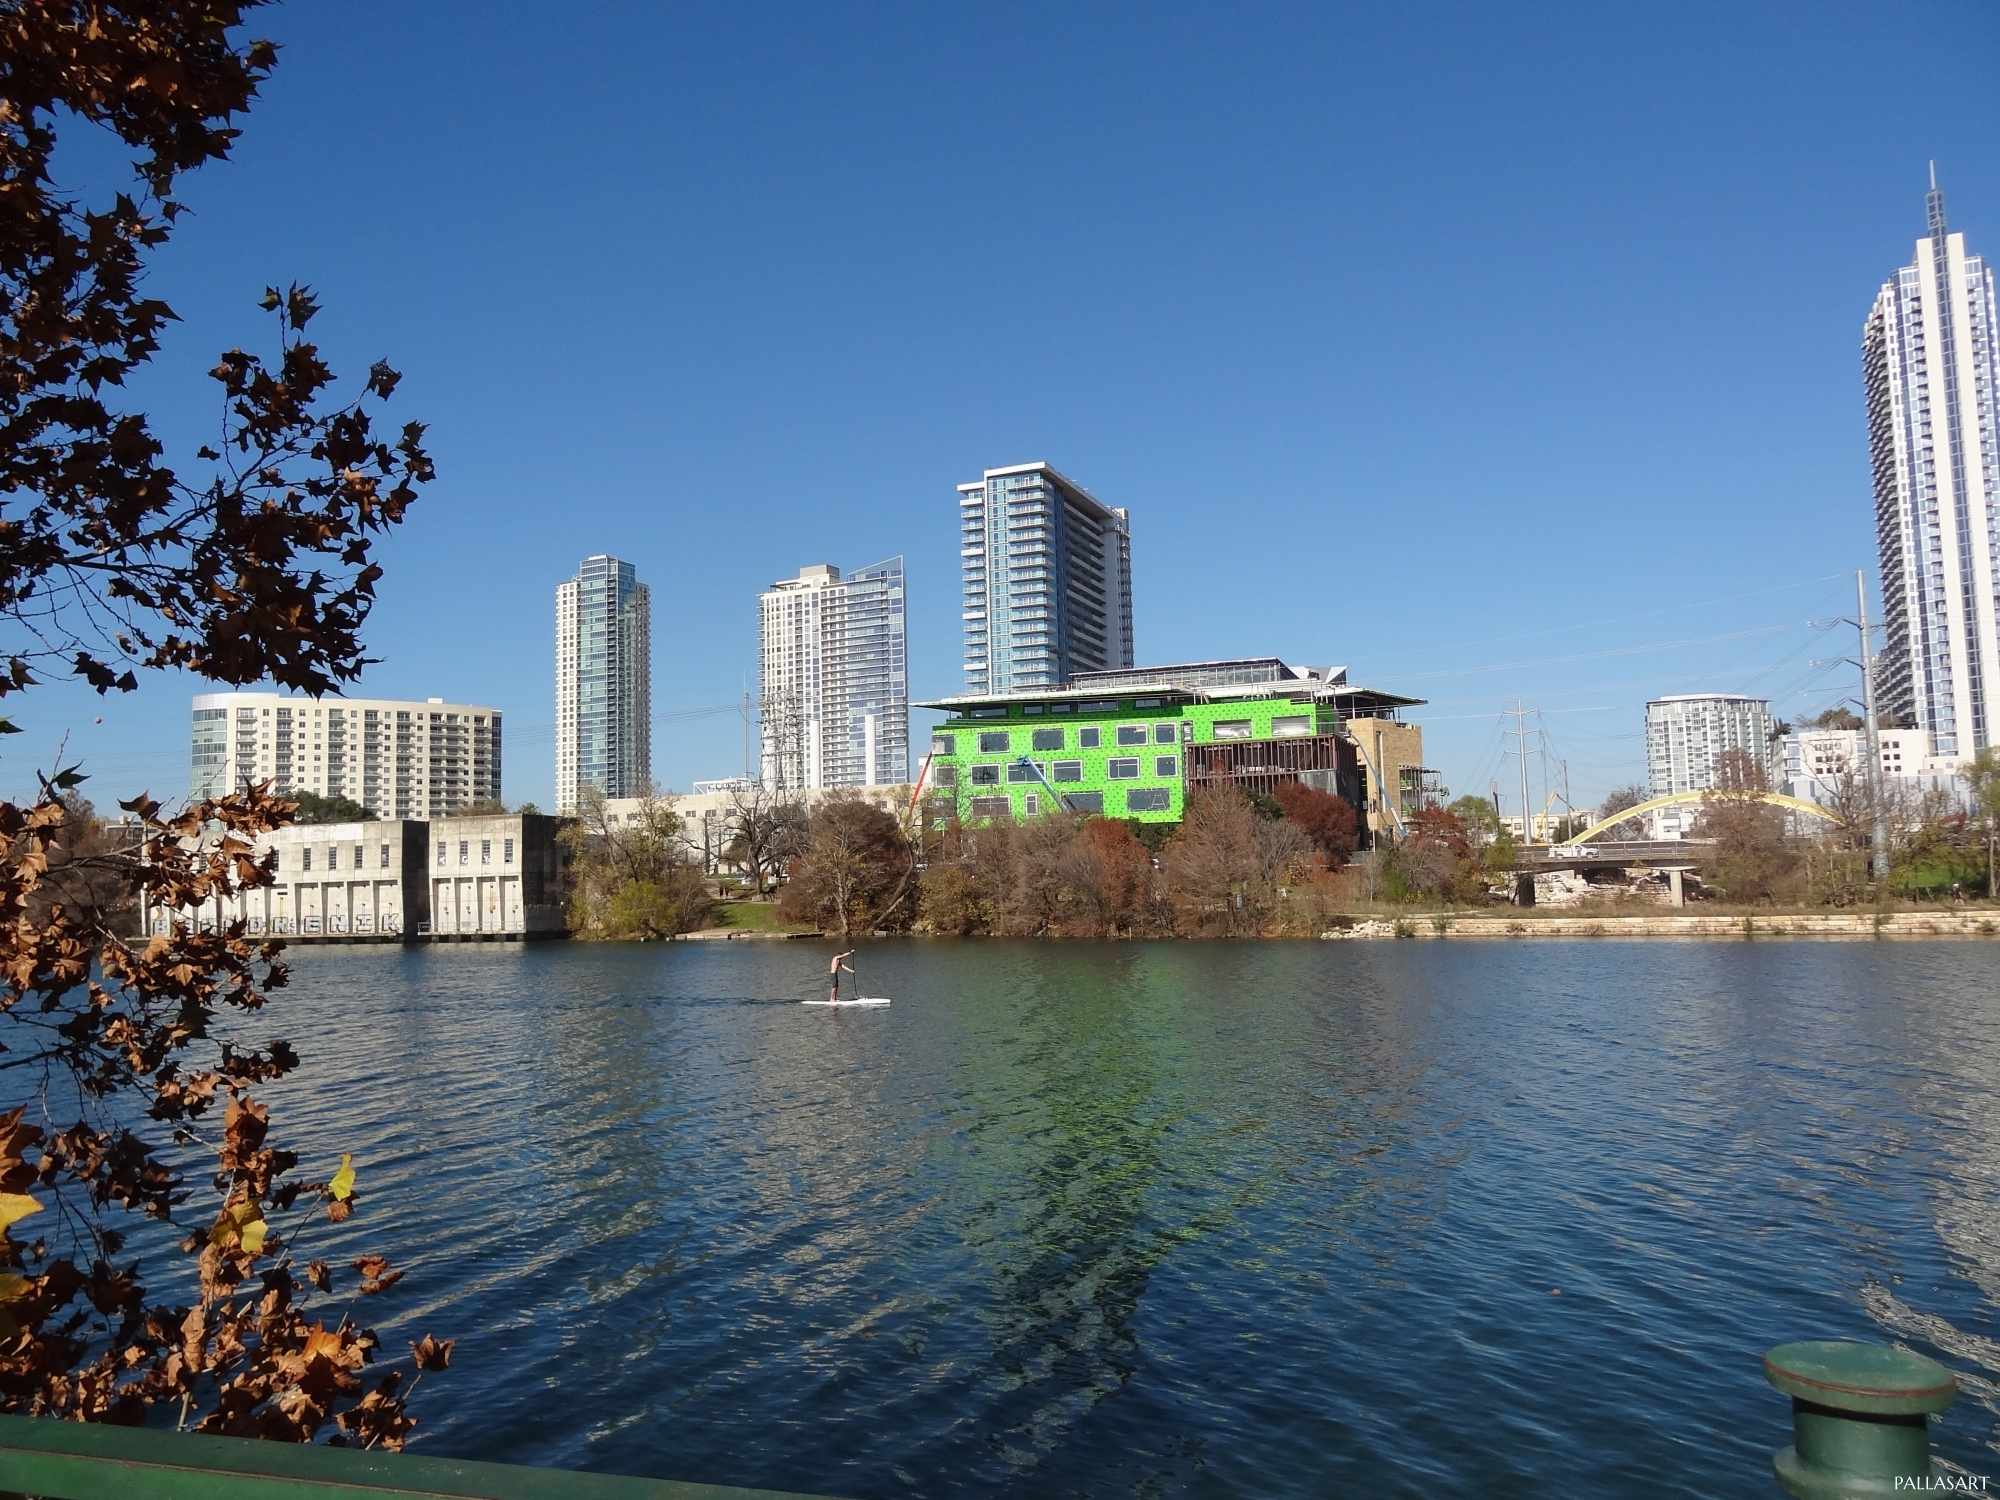 Austin Central Library Under Construction on Lady Bird Lake